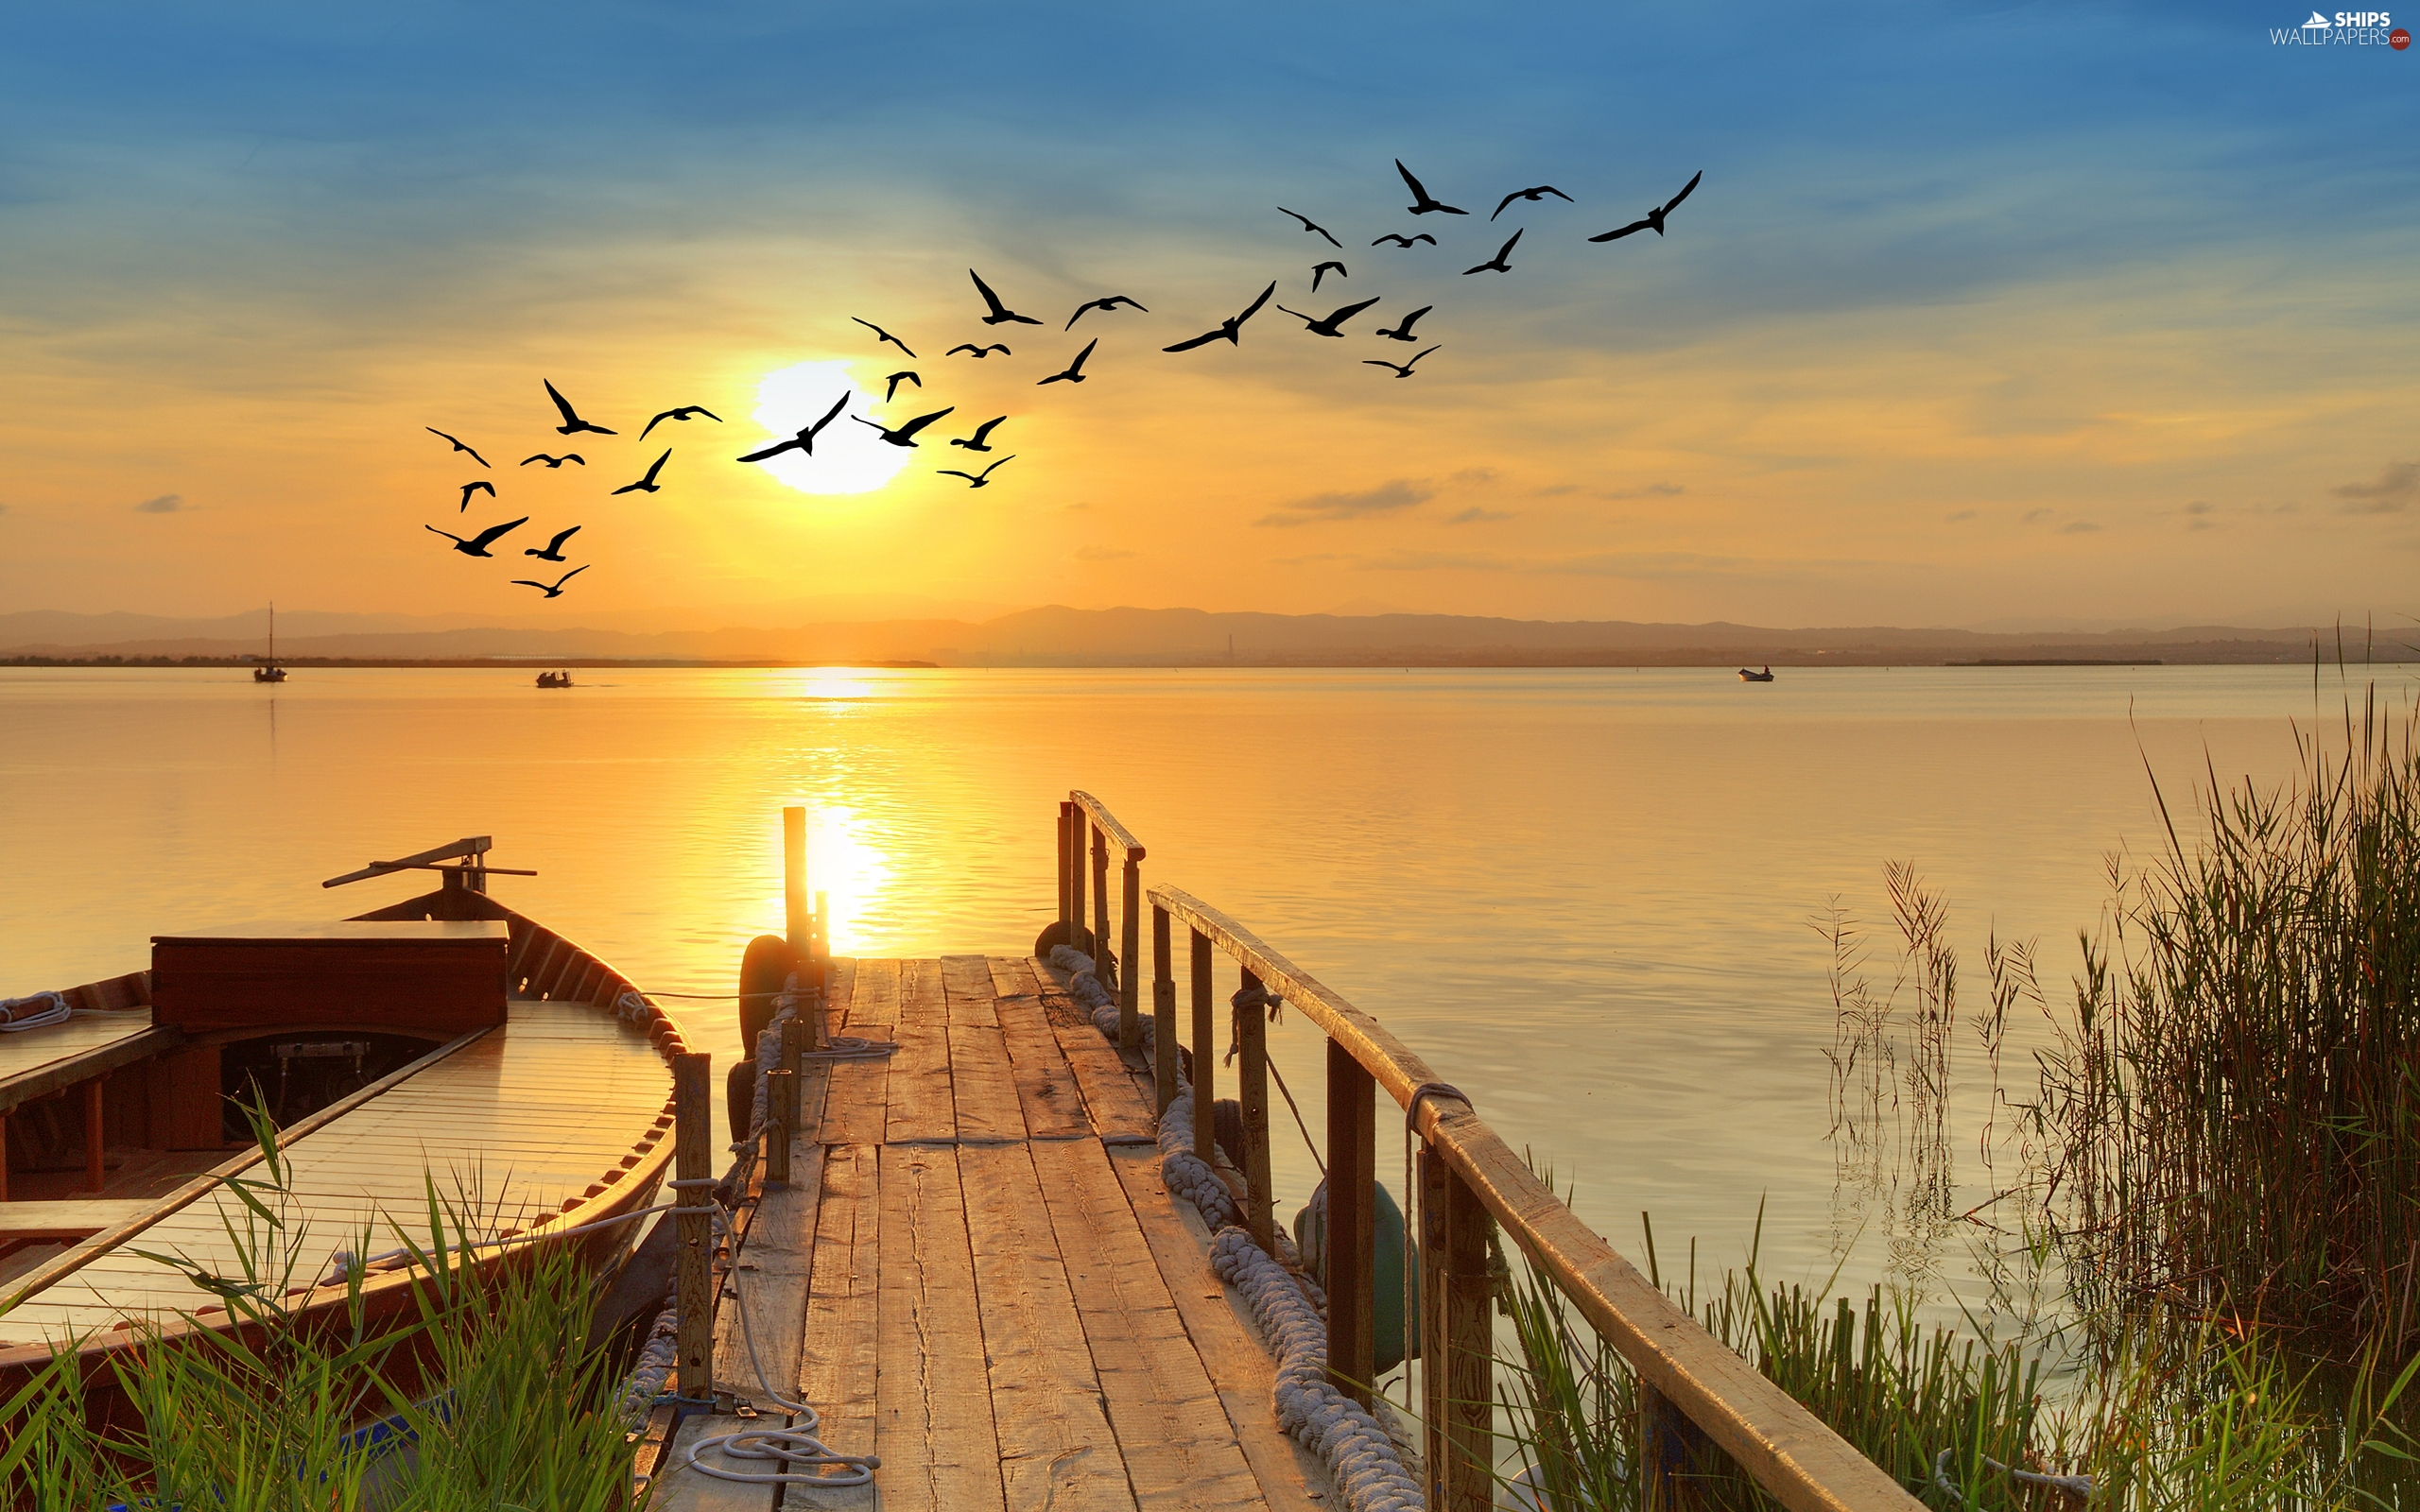 Platform, birds, Sunrise, boats, lake